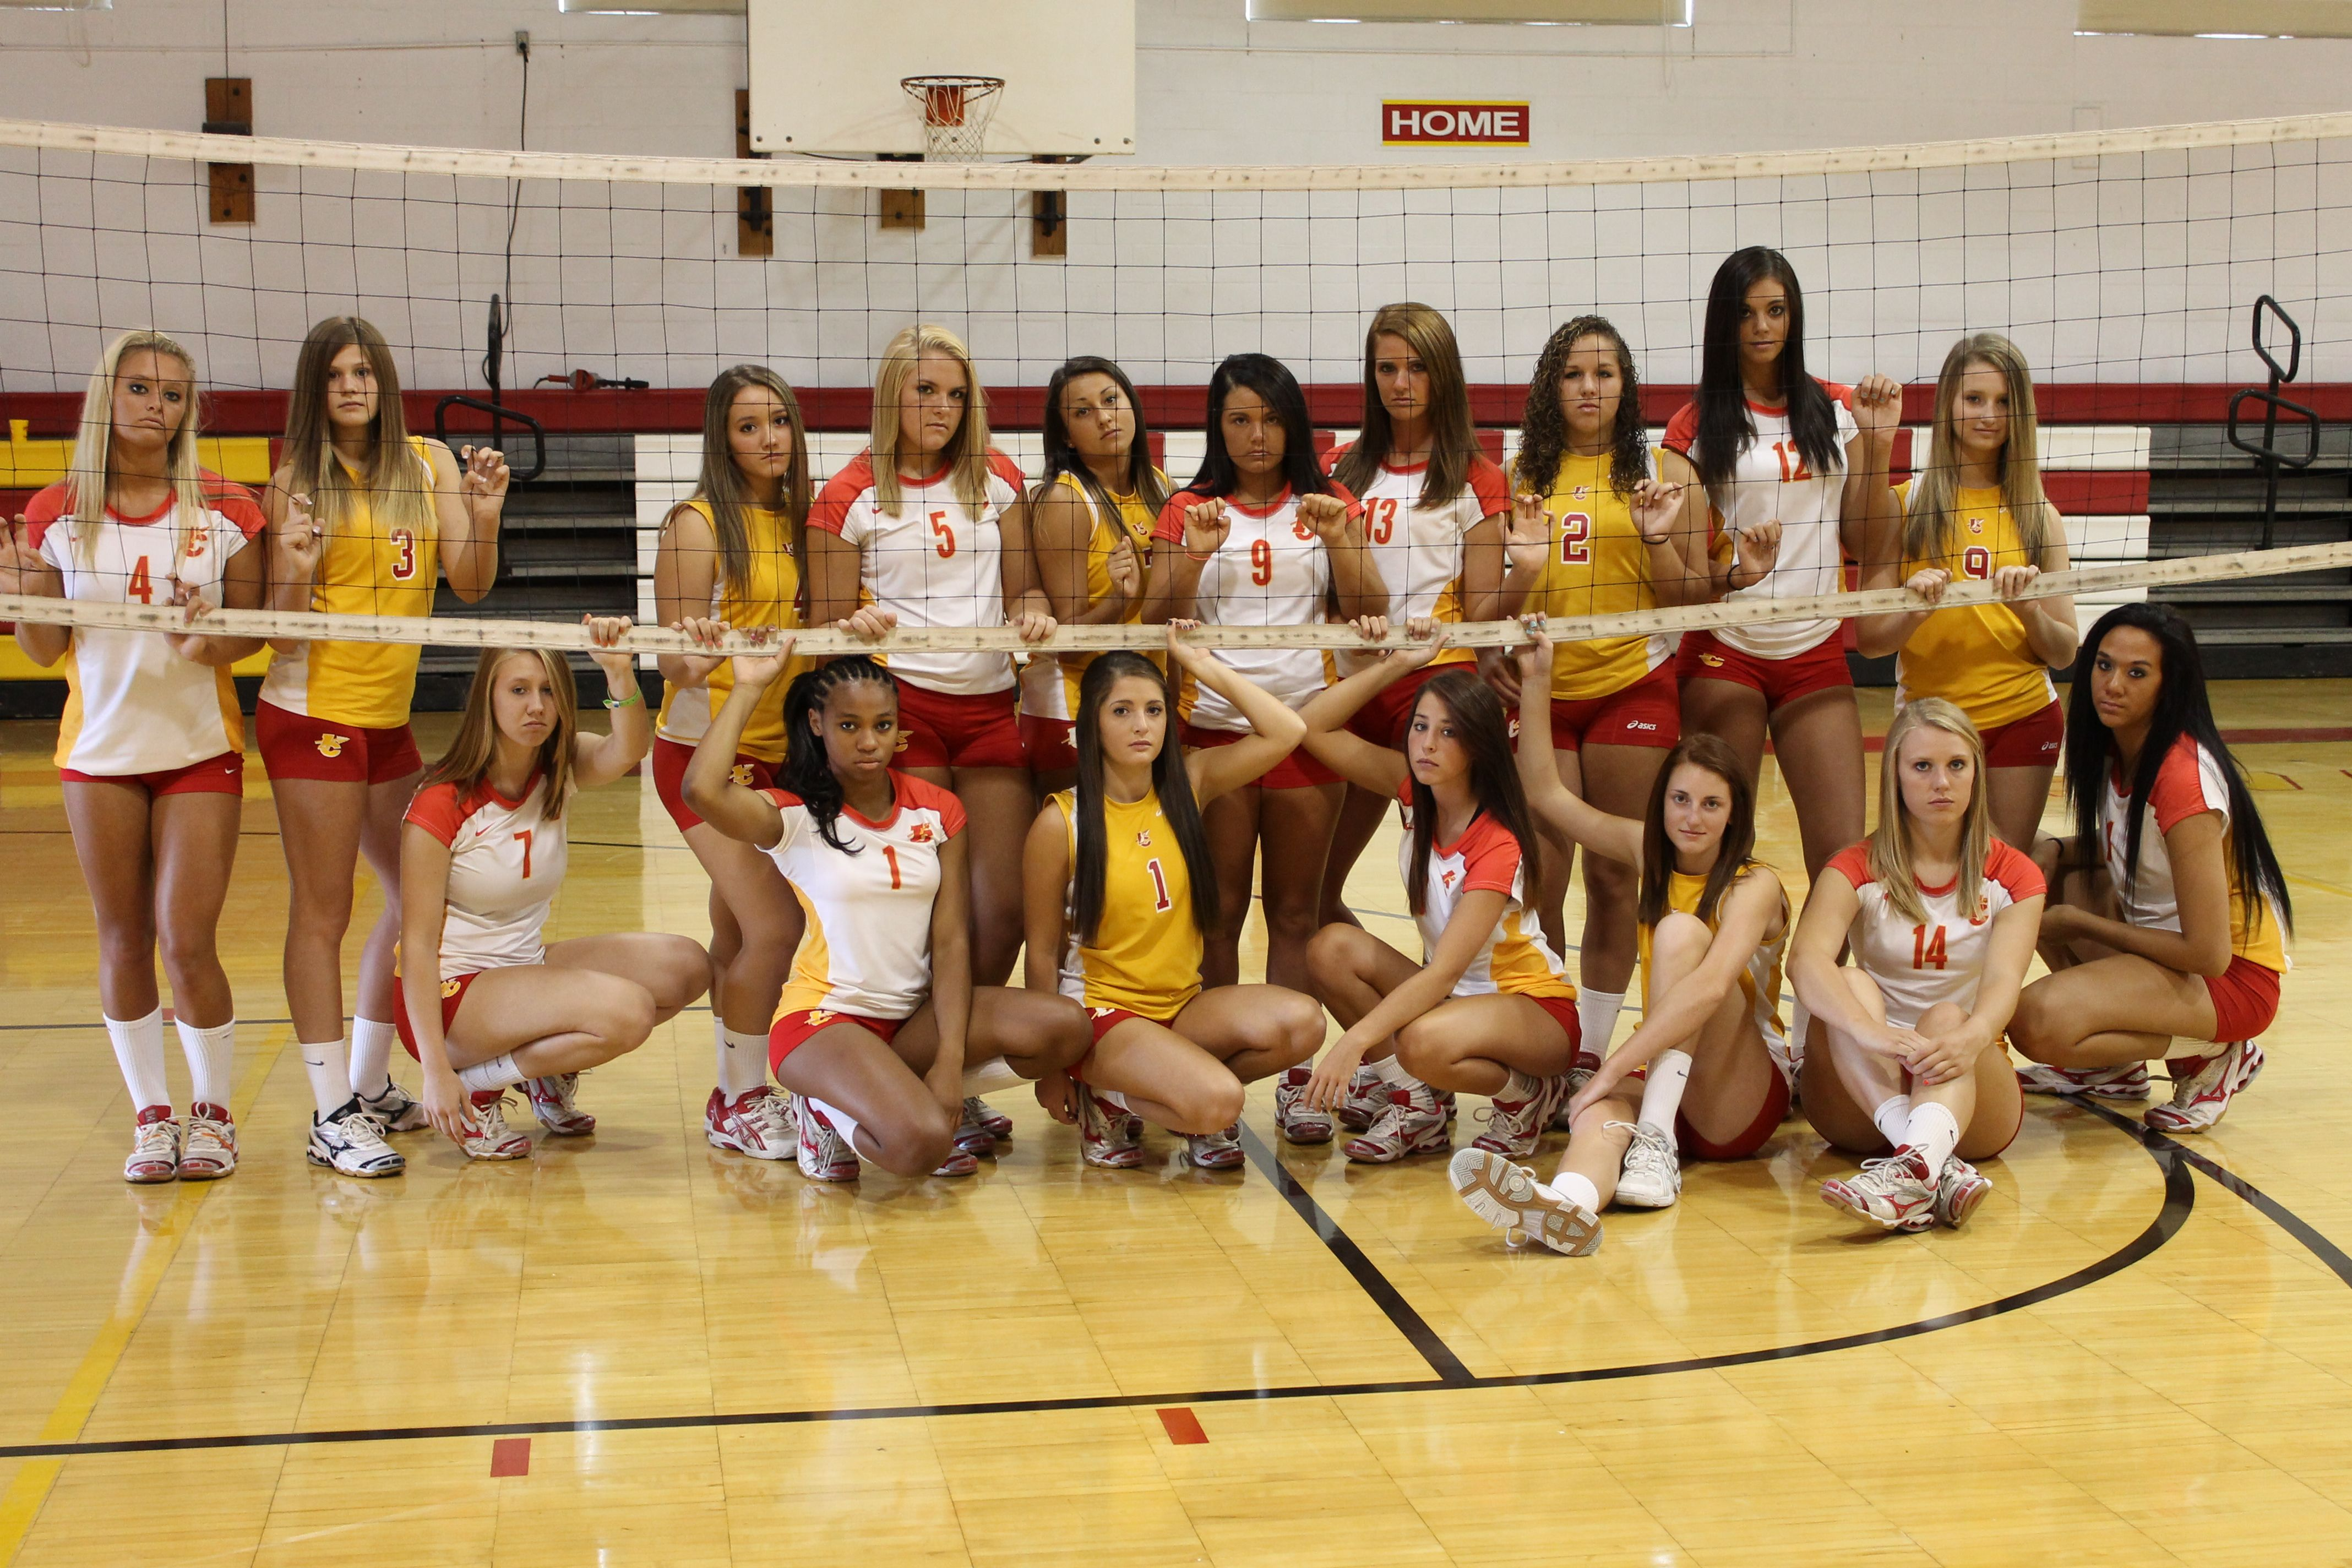 Volleyball team picture fun photo ideas pinterest for Team picture ideas